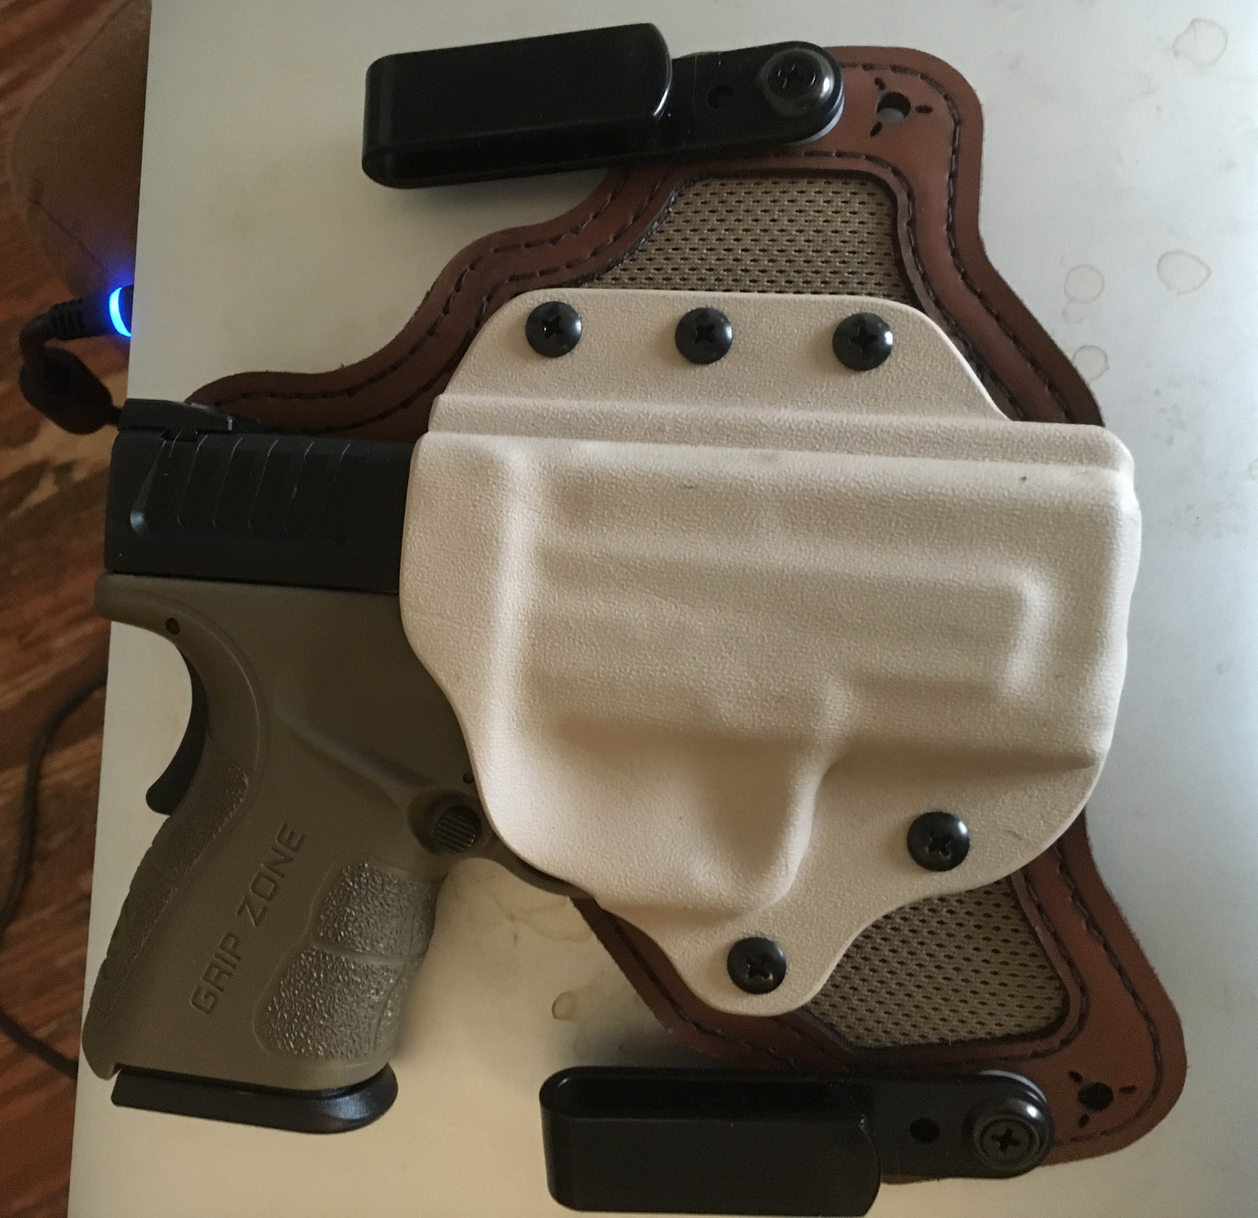 Black Arch Holster for my Springfield XD Mod 2  45 ACP Sub-Compact